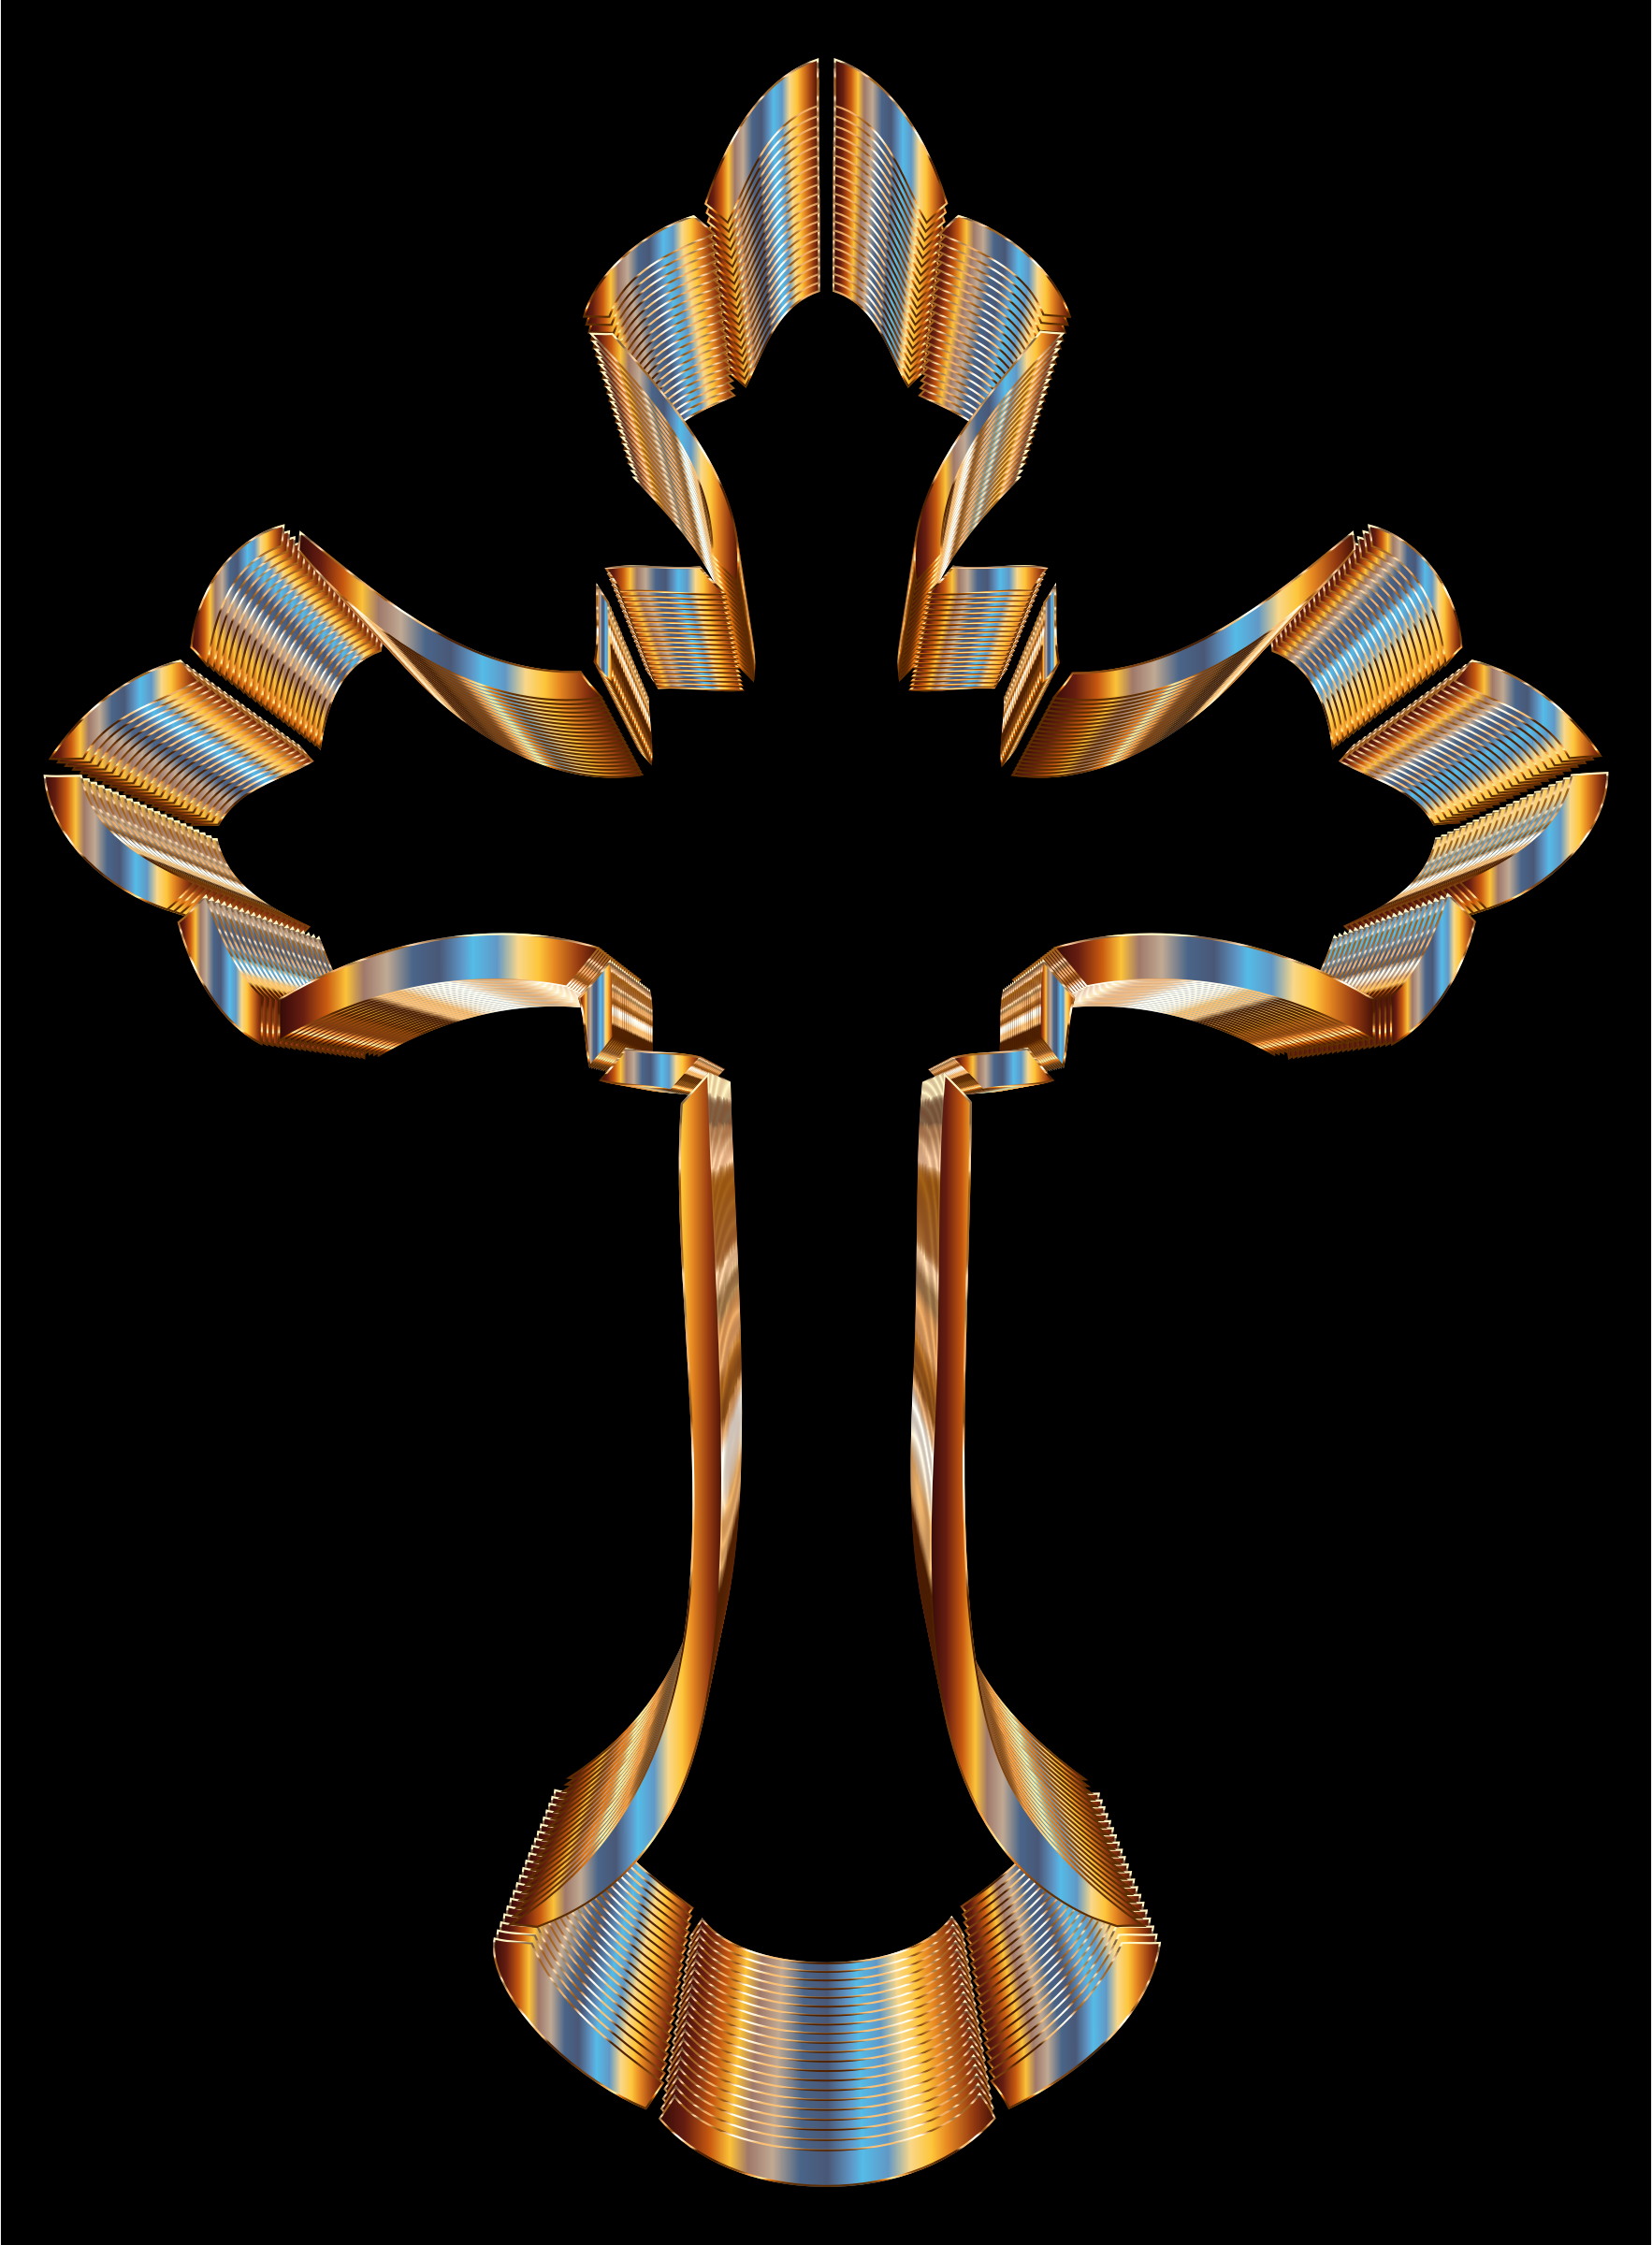 Chromatic Ornate Cross by GDJ